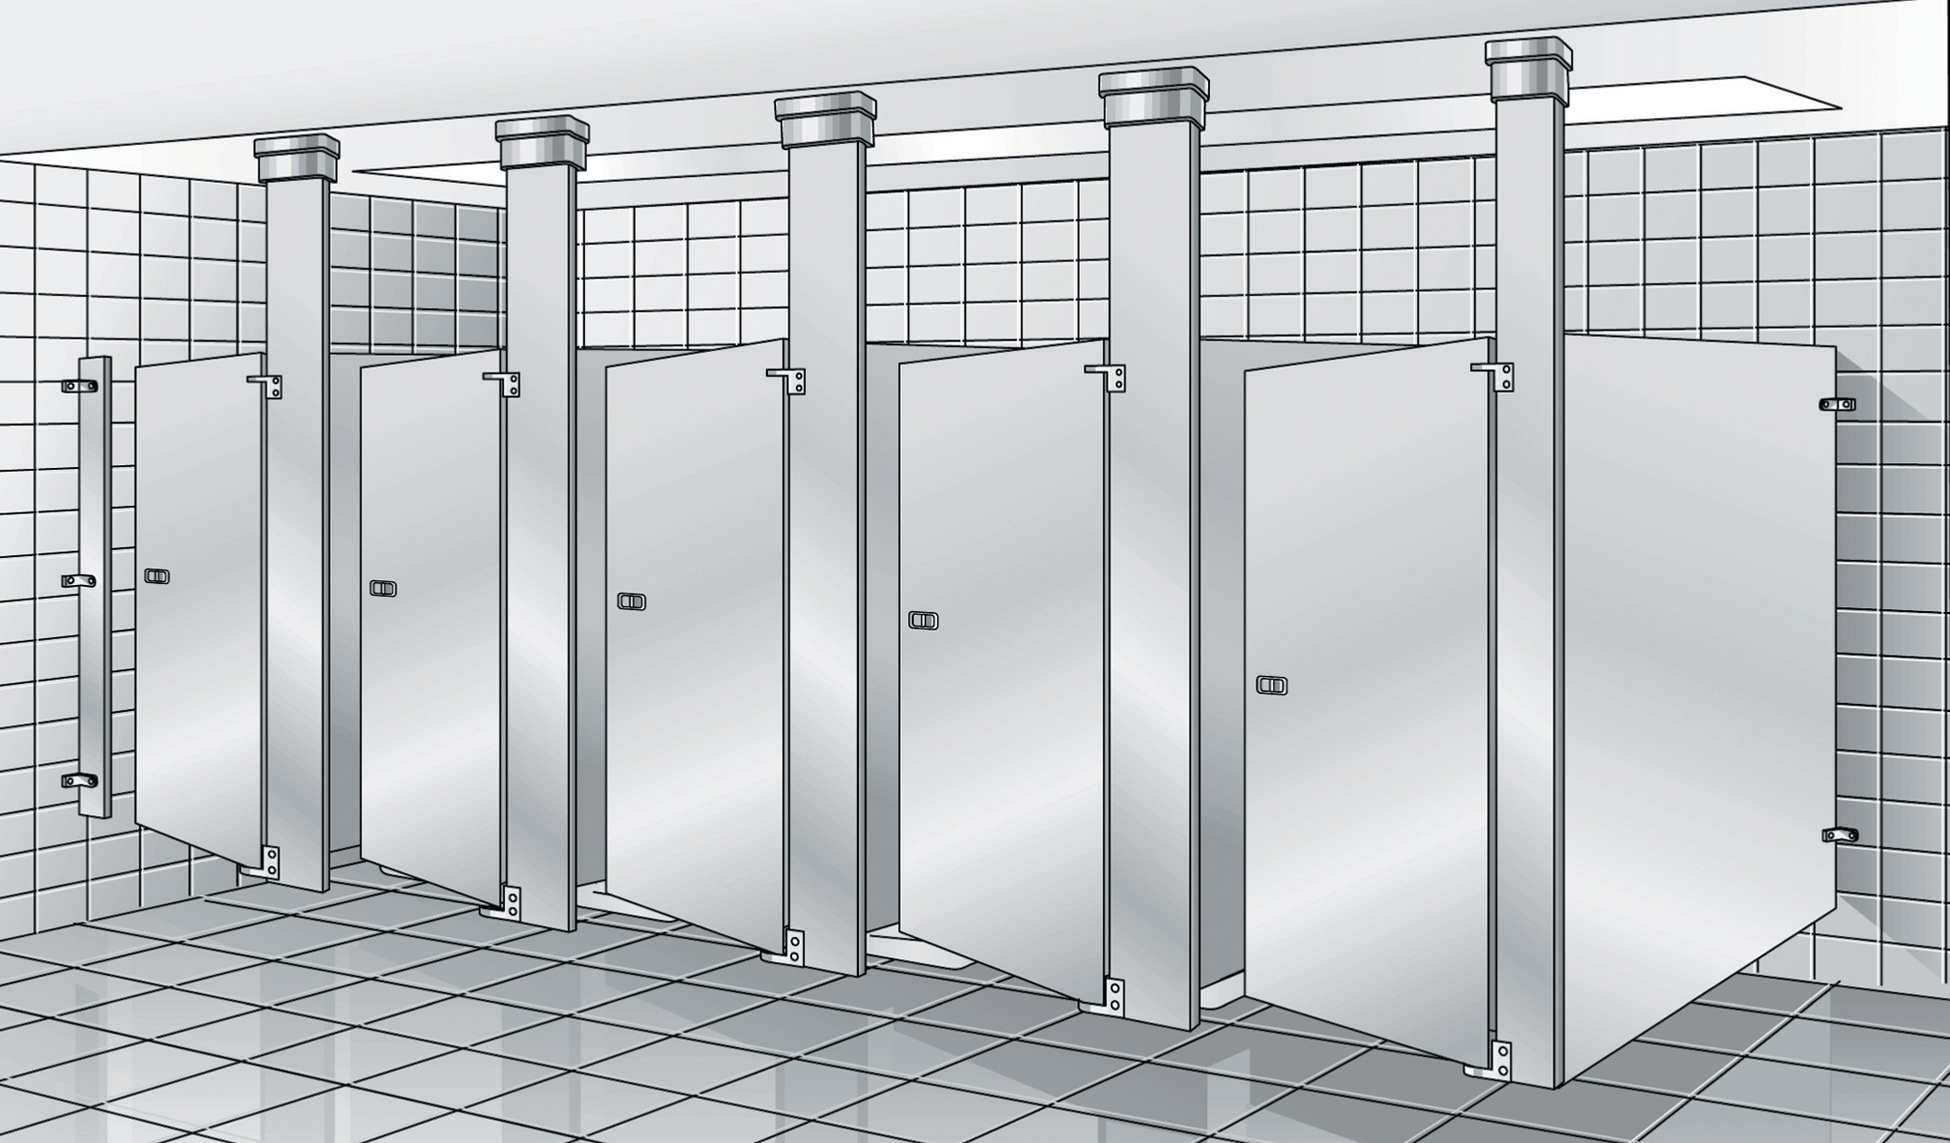 Commercial Bathroom Stall Dimensions